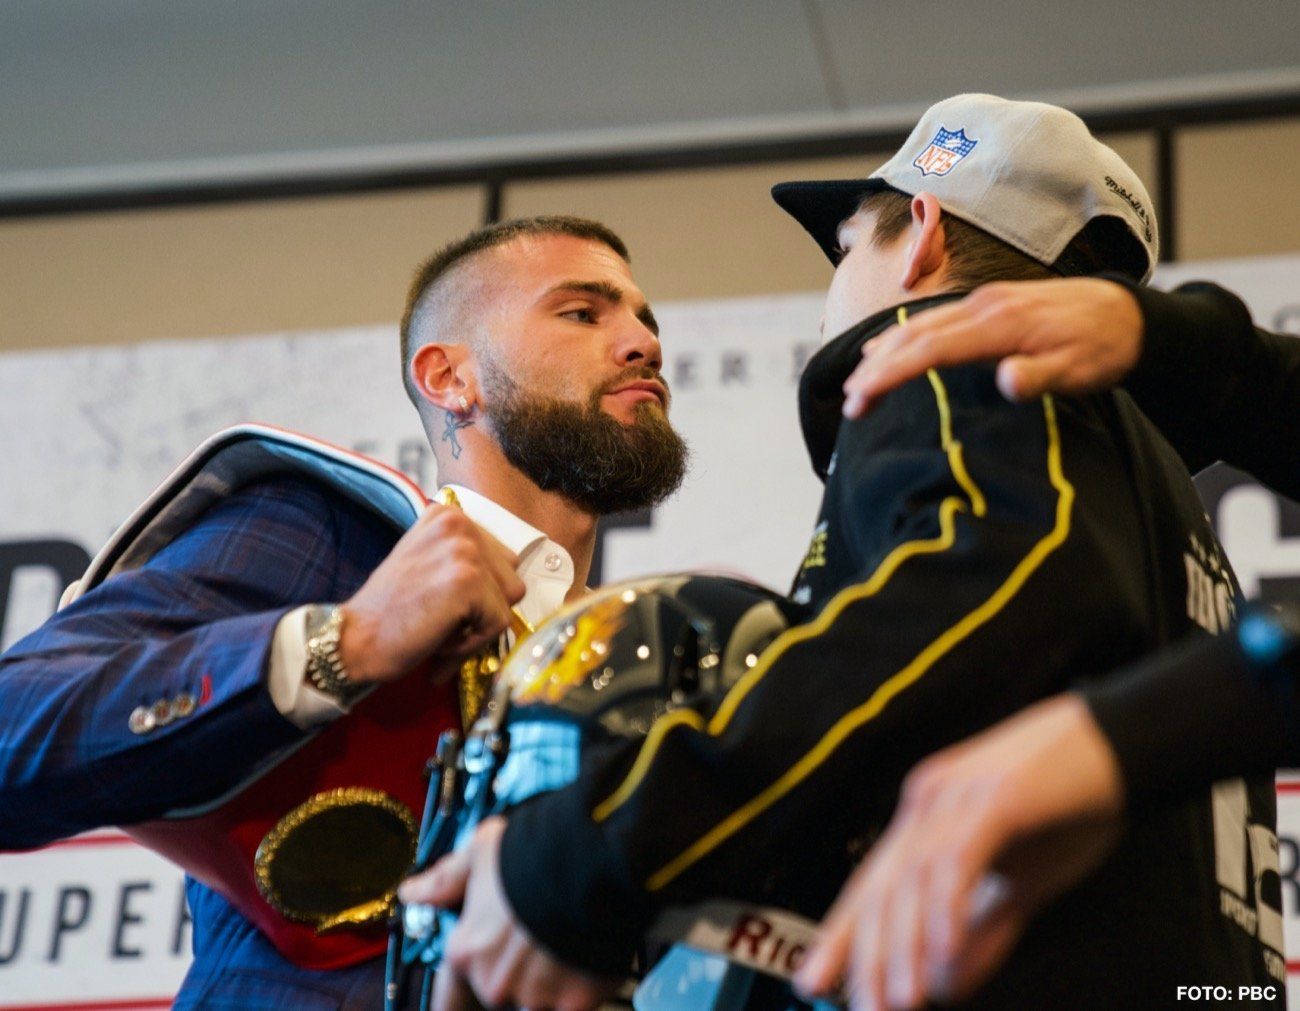 Caleb Plant, Vincent Feigenbutz - The 'KO King' Vincent Feigenbutz (31-2, 28 KOs) came face to face with Caleb Plant (19-0, 11 KOs) for the first time at Thursday's press conference ahead of their IBF Super Middleweight World title fight this Saturday night at the Bridgestone Arena in Nashville, Tennessee.